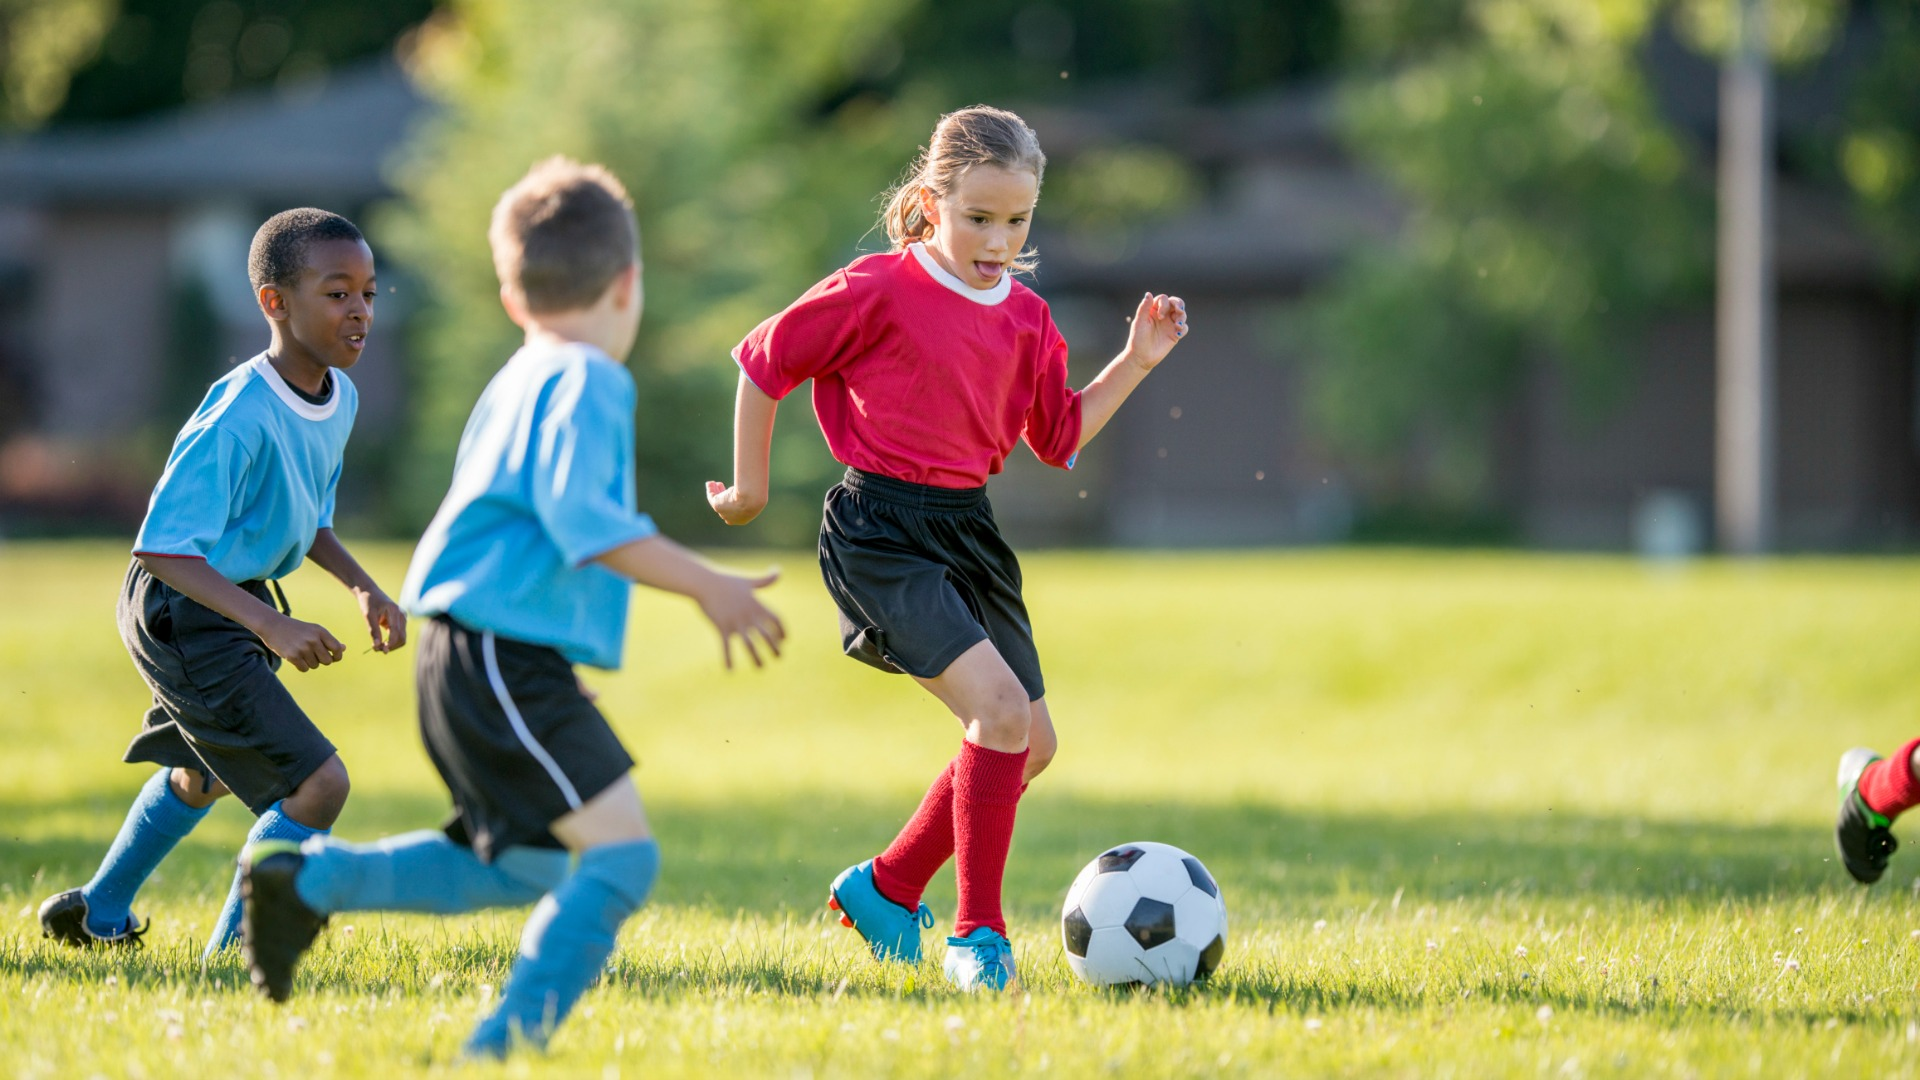 Encouraging Early Sports Skills